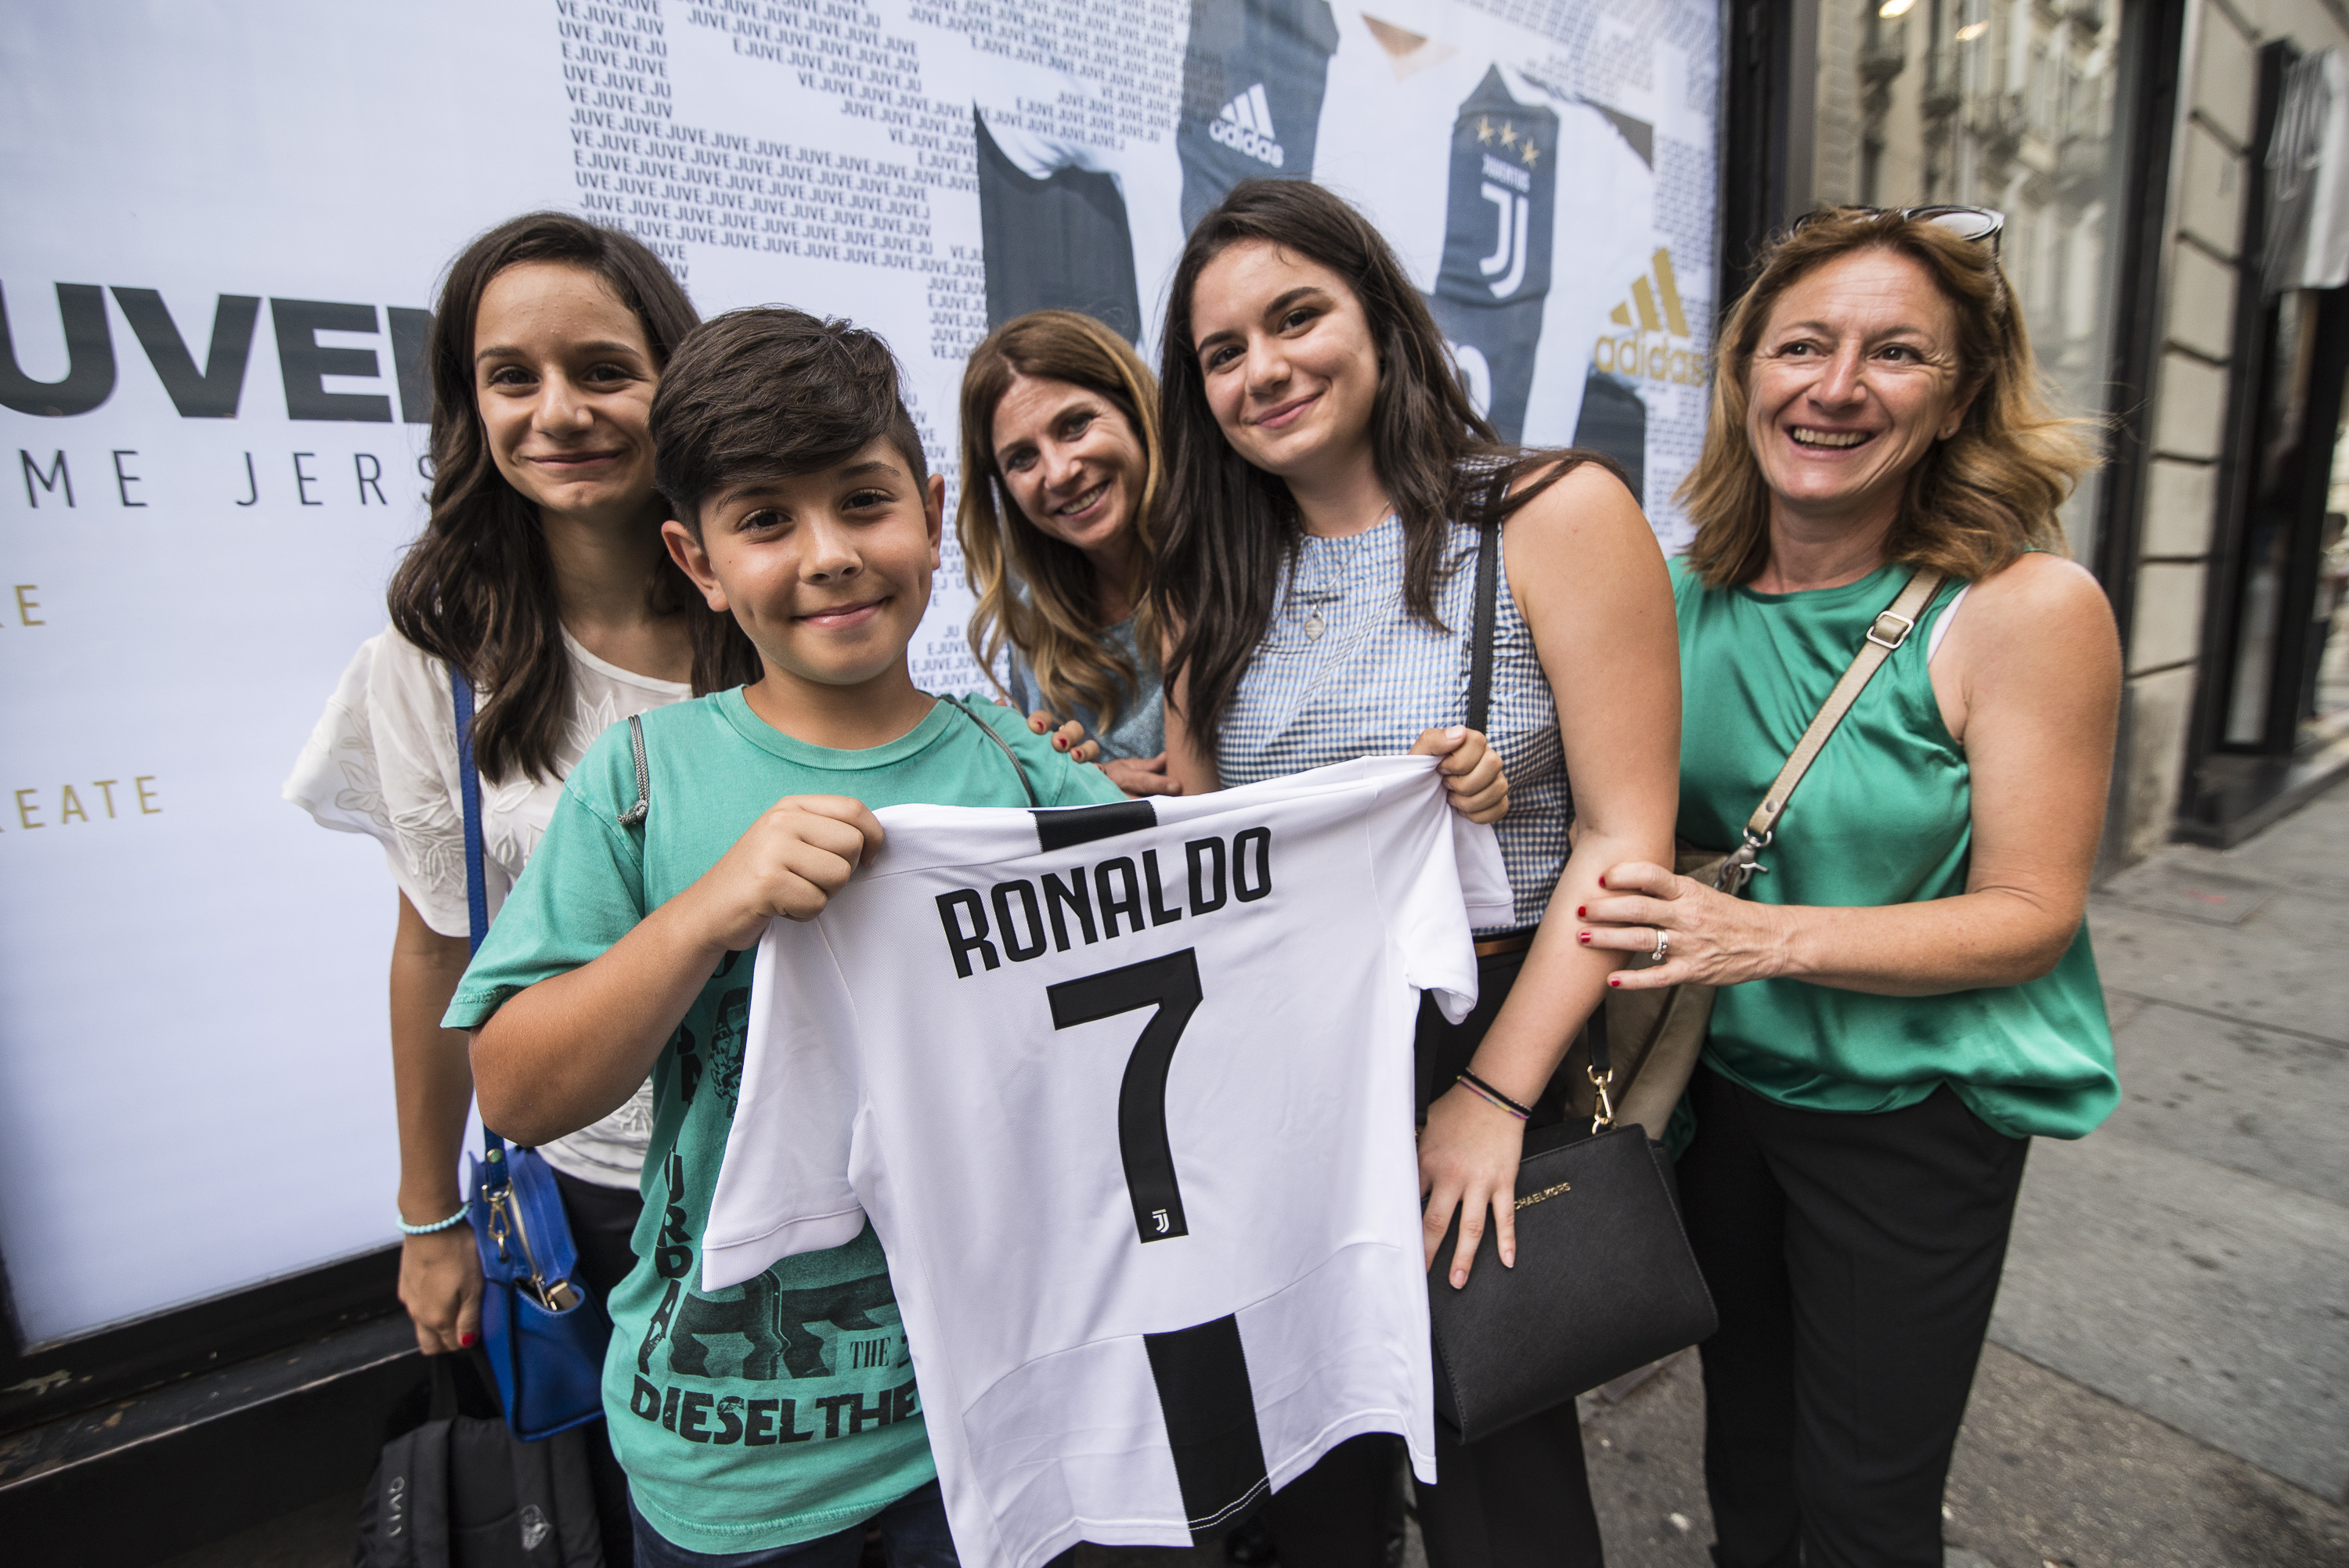 finest selection 64276 9966a Juventus Sold A Ridiculous Amount Of Cristiano Ronaldo ...